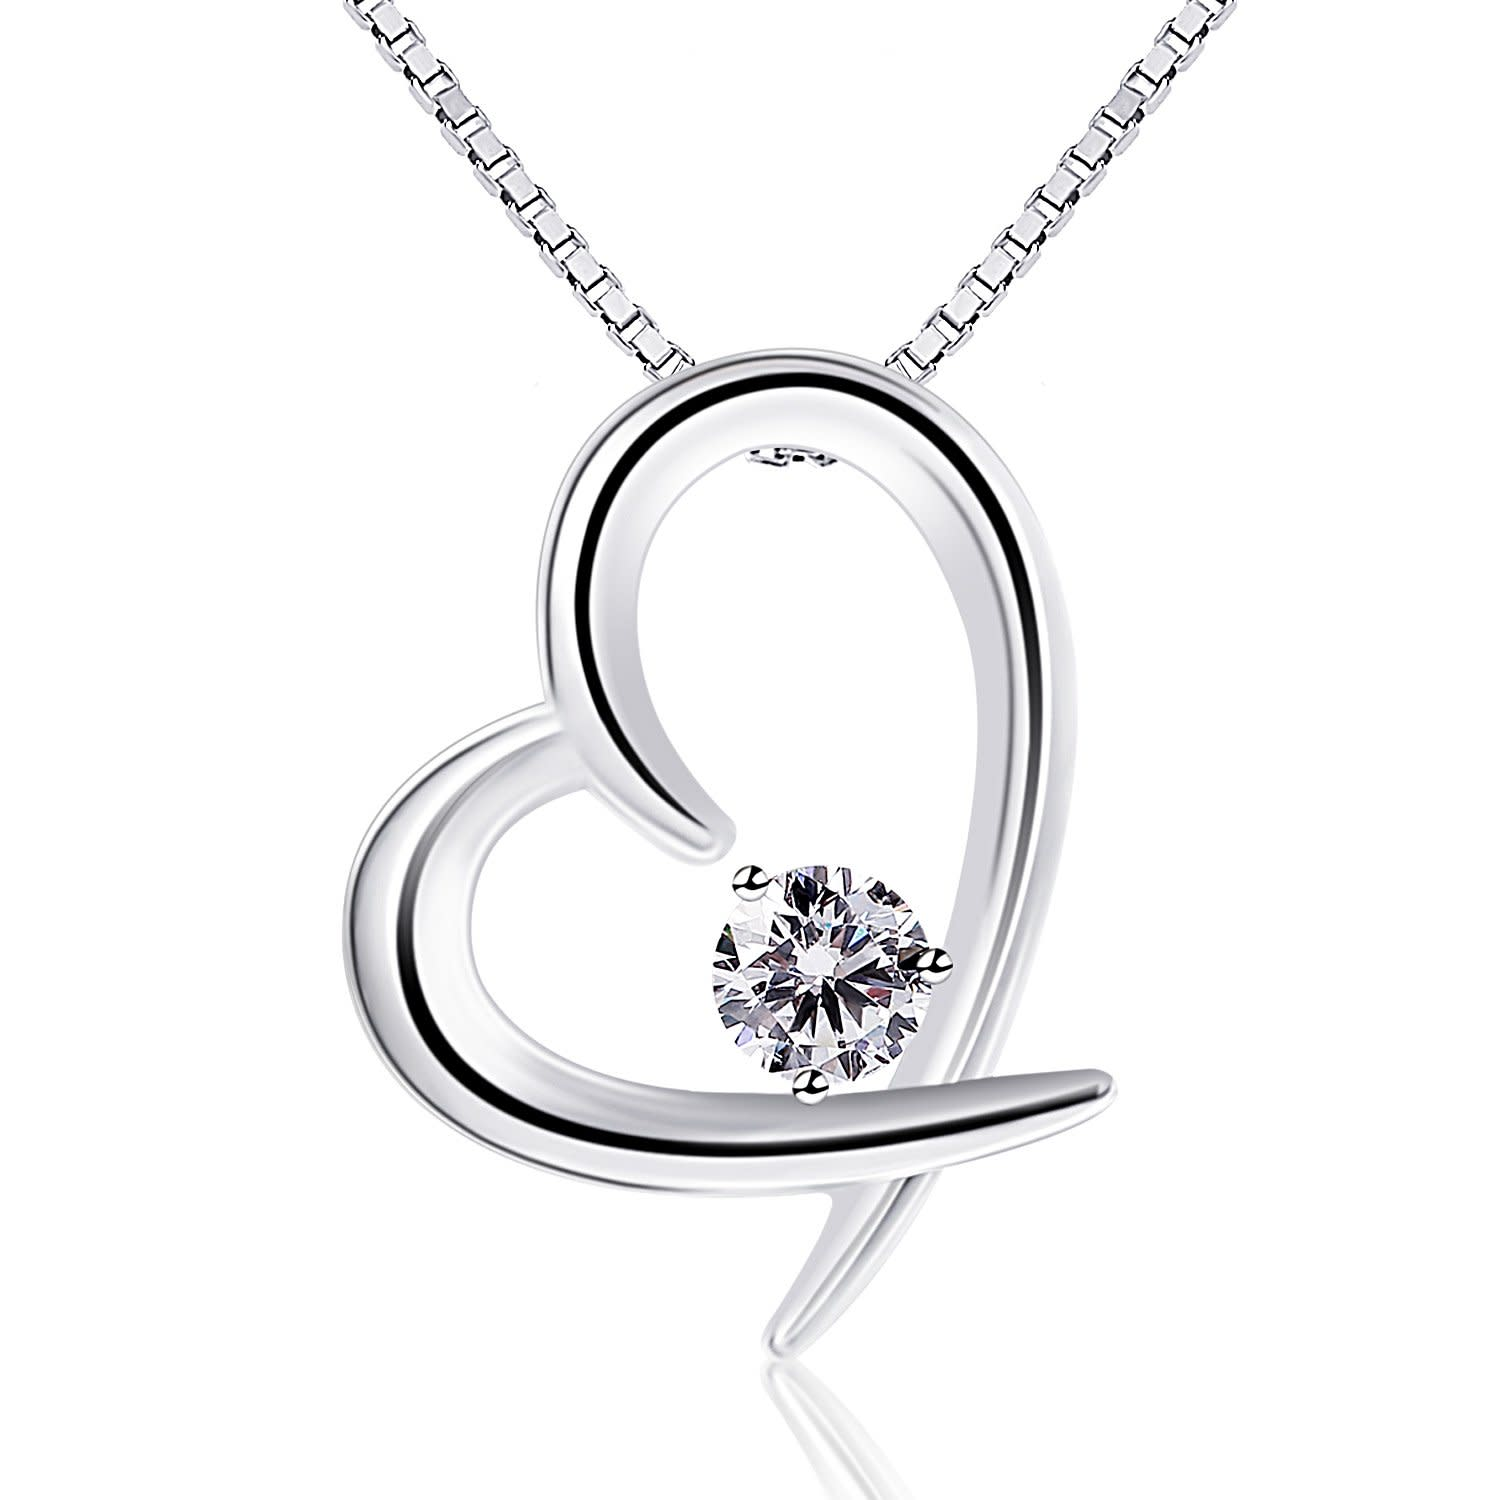 necklace jewellery pendant diamond heart d beautiful mirell ladies titanium edward